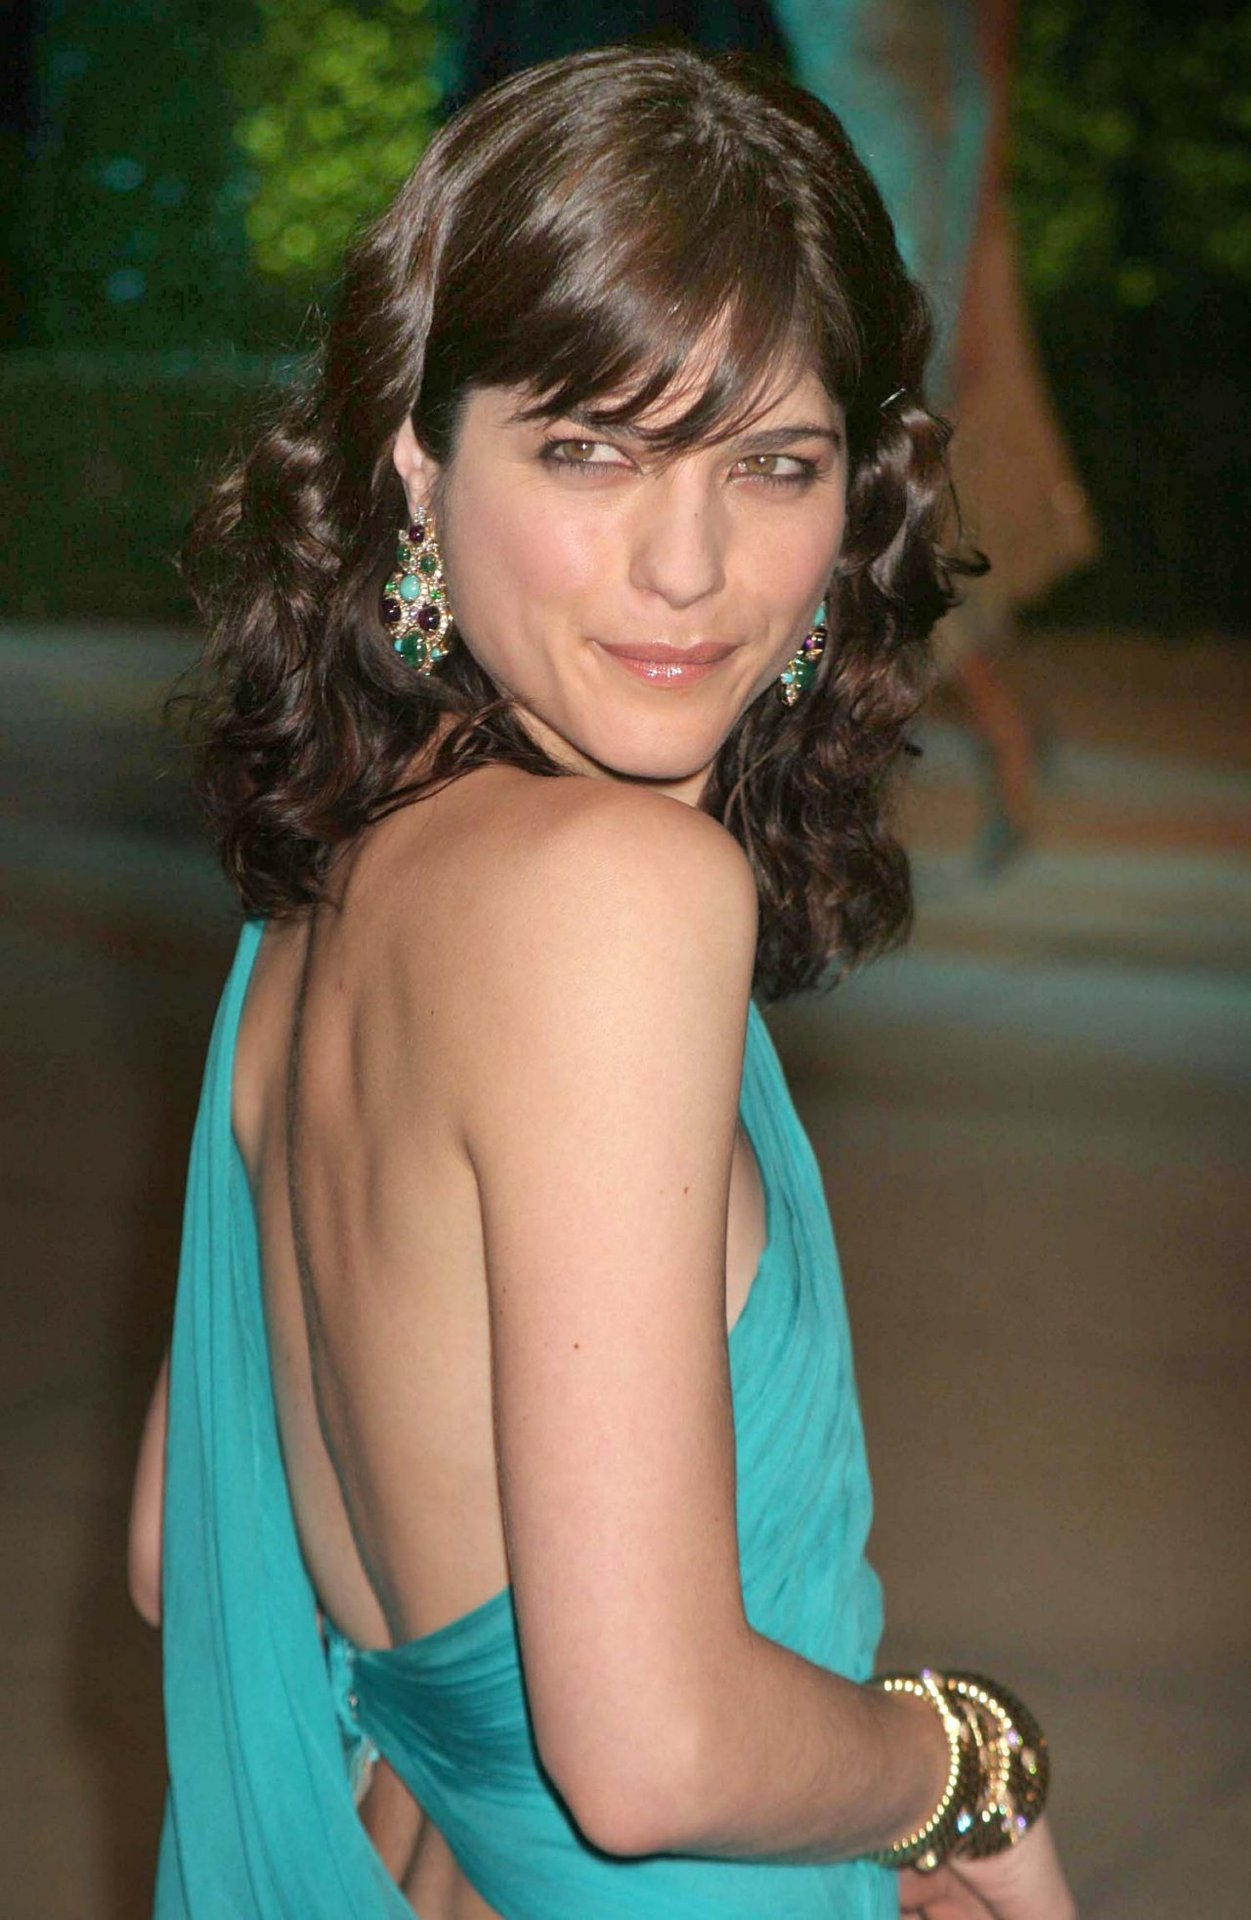 Selma Blair - Selma Blair Photo (201240) - Fanpop